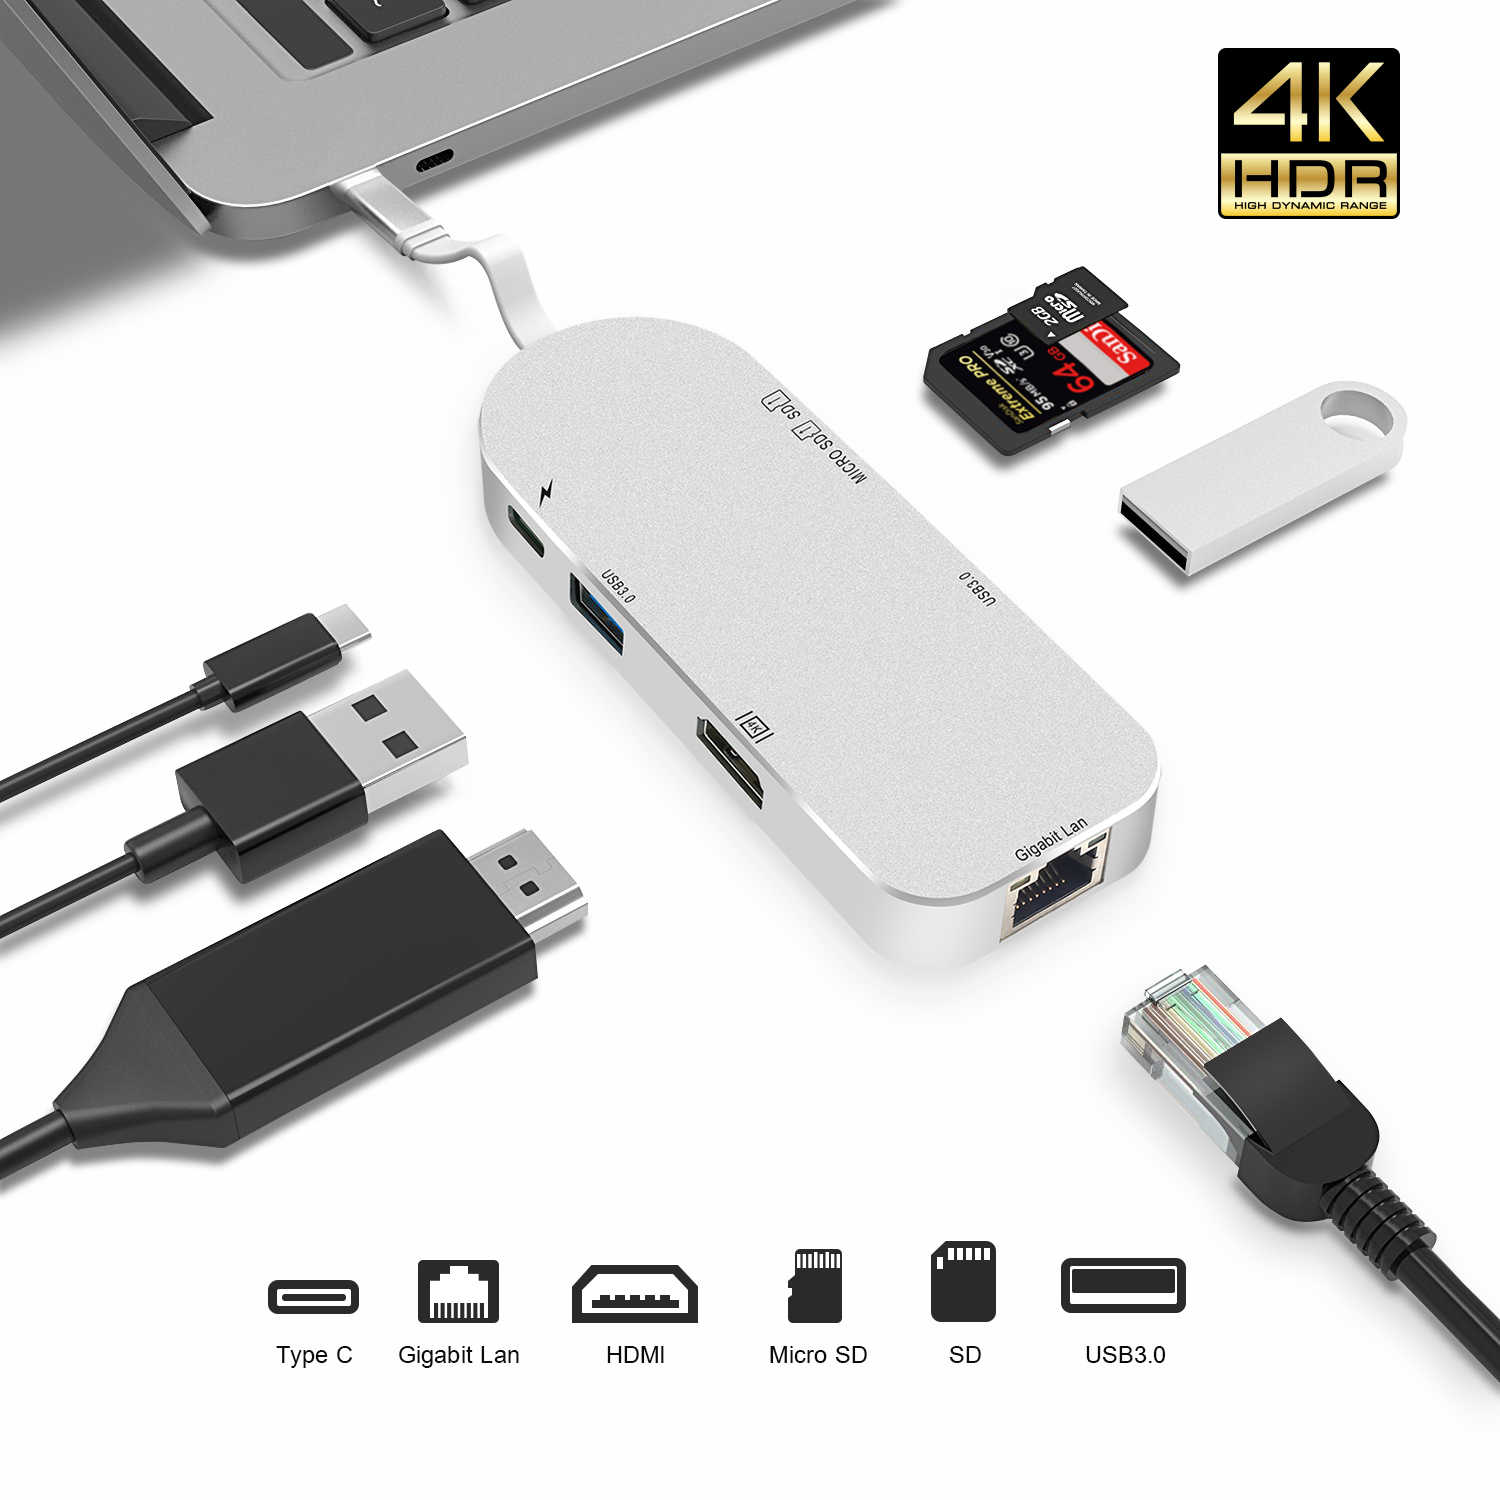 USB C концентратор HDMI USB-C Ethernet адаптер для Macbook Pro Thunderbolt 3, Тип C концентратор Gigabit Lan 4 К кардридер + type-C питание доставка